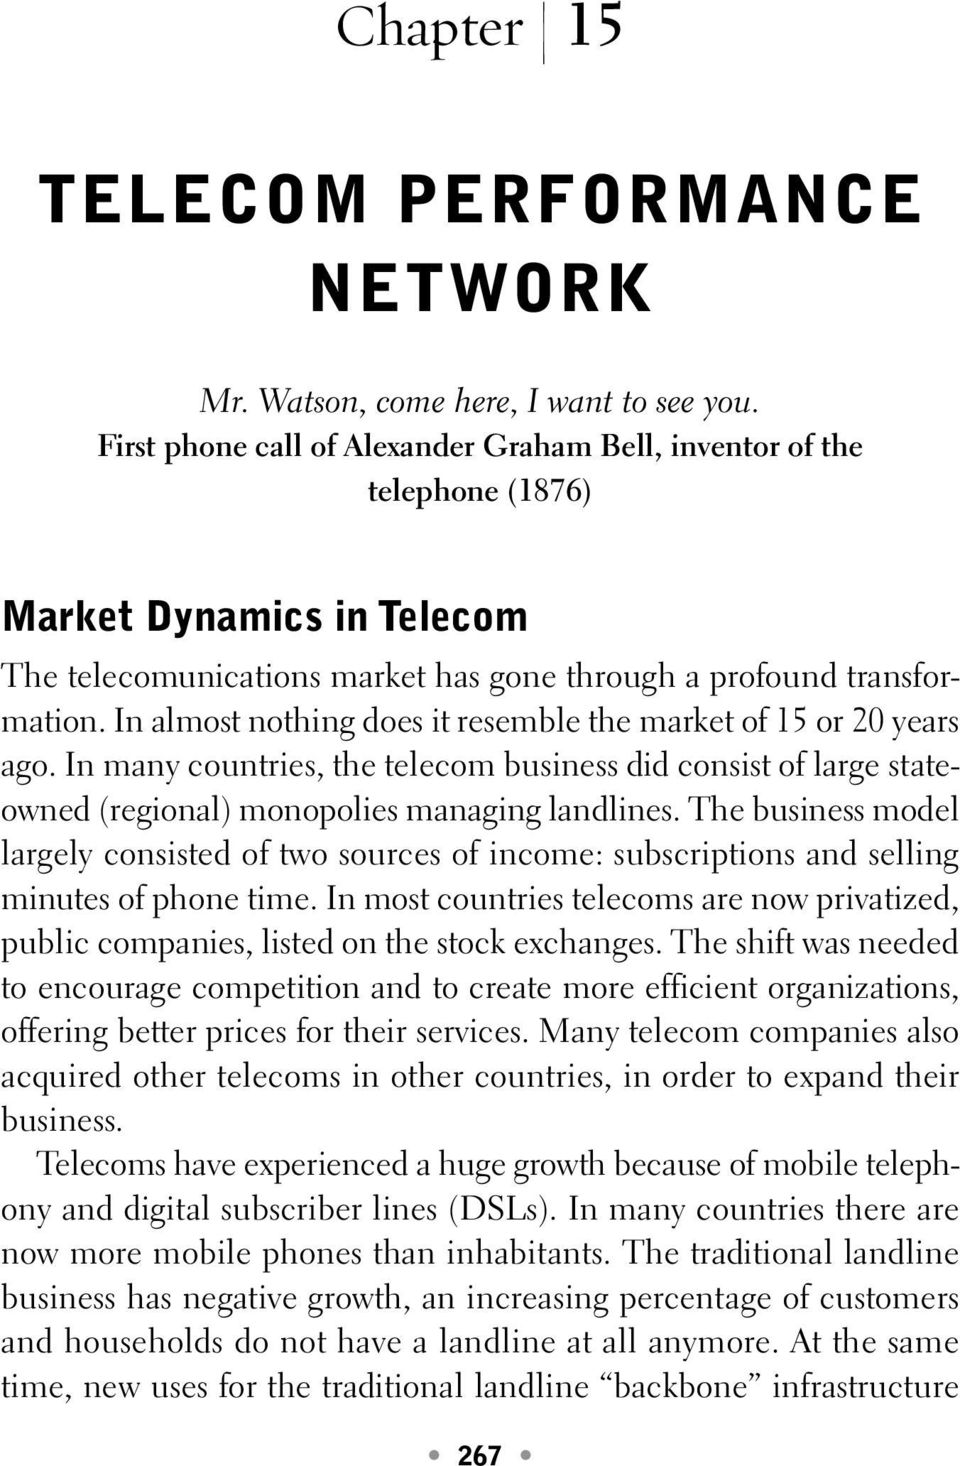 In almost nothing does it resemble the market of 15 or 20 years ago. In many countries, the telecom business did consist of large stateowned (regional) monopolies managing landlines.